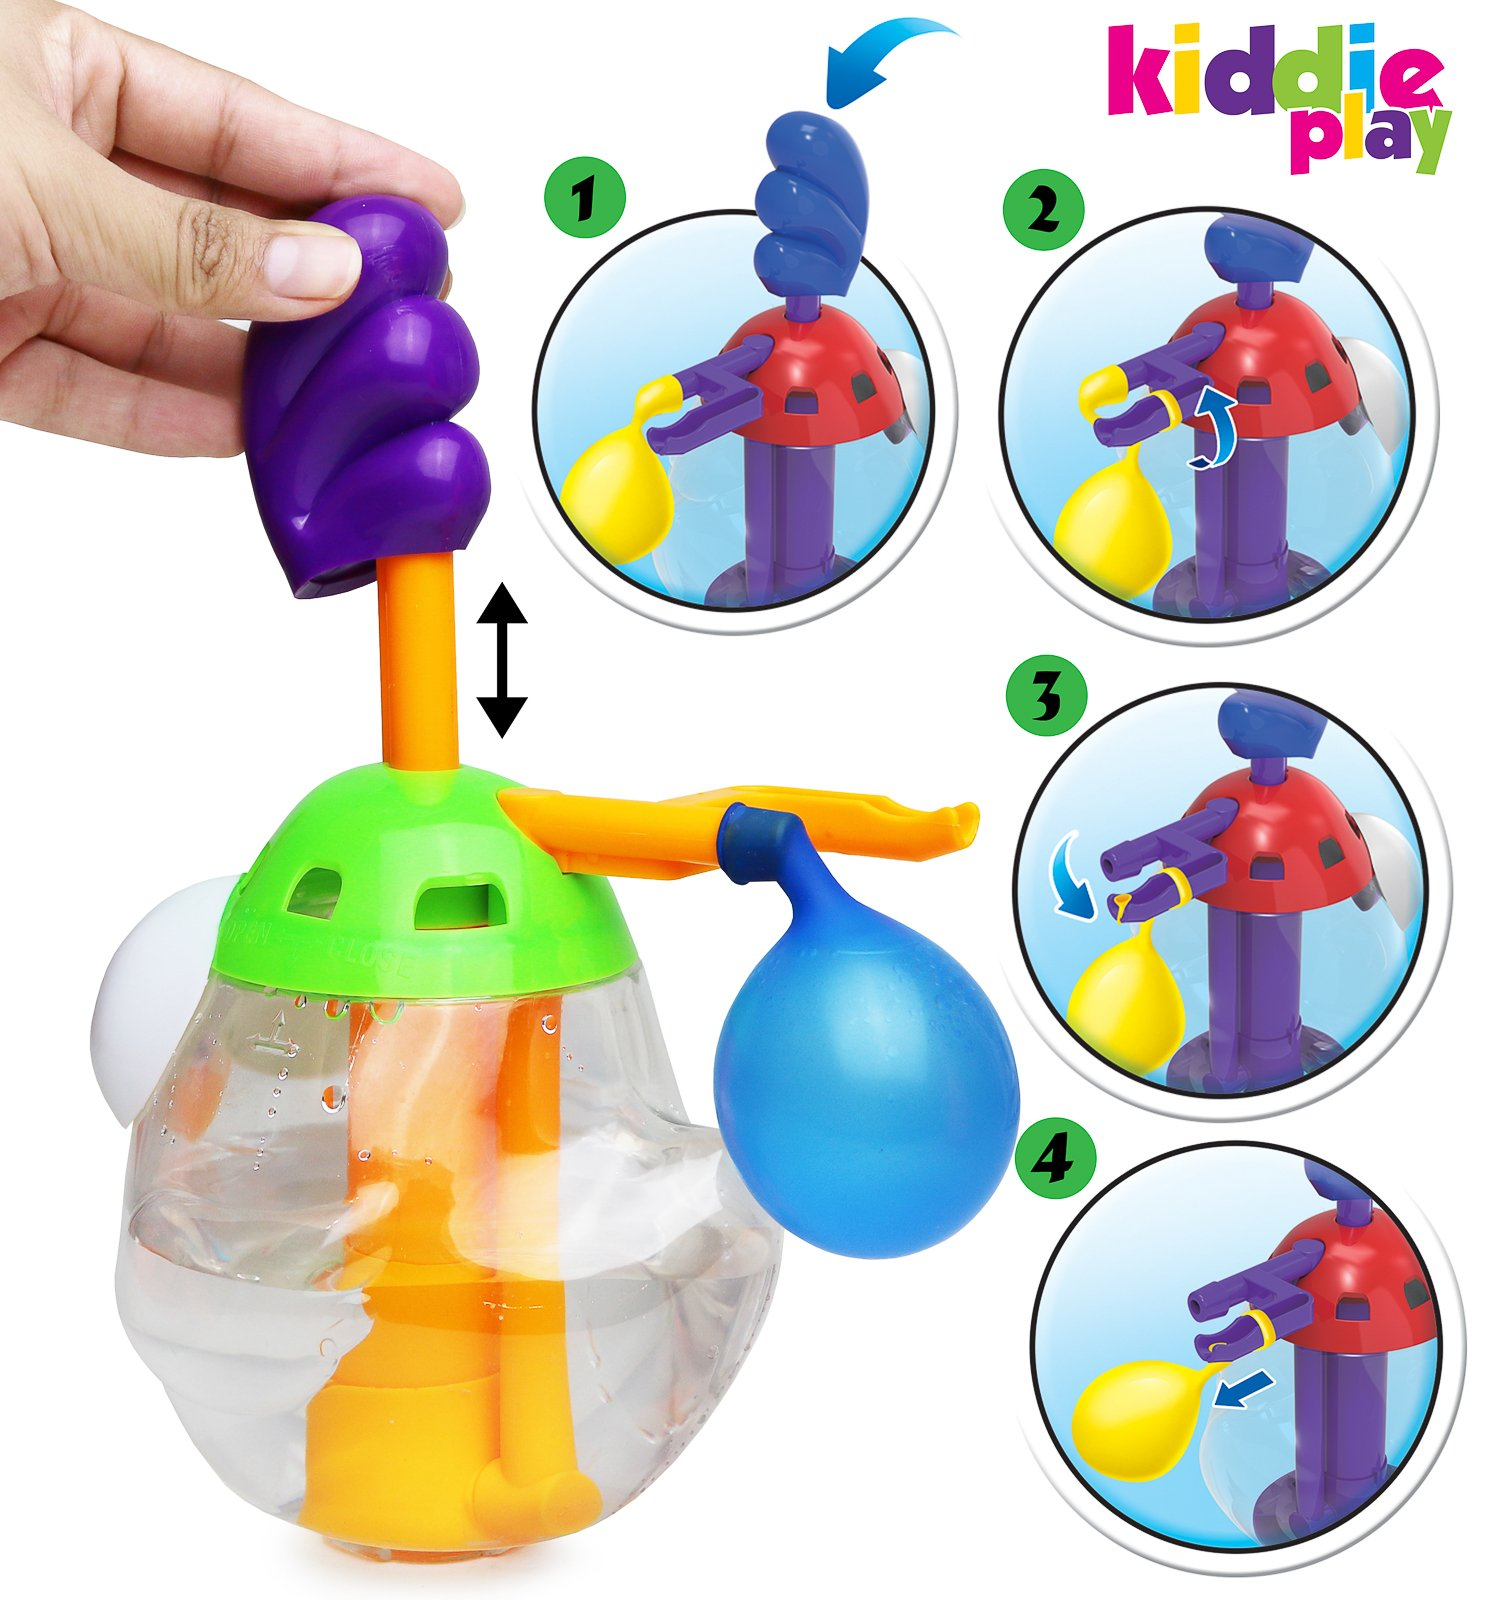 Kiddie Play Water Balloons for Kids with Filler Pump (250 Balloons) by Kiddie Play (Image #3)